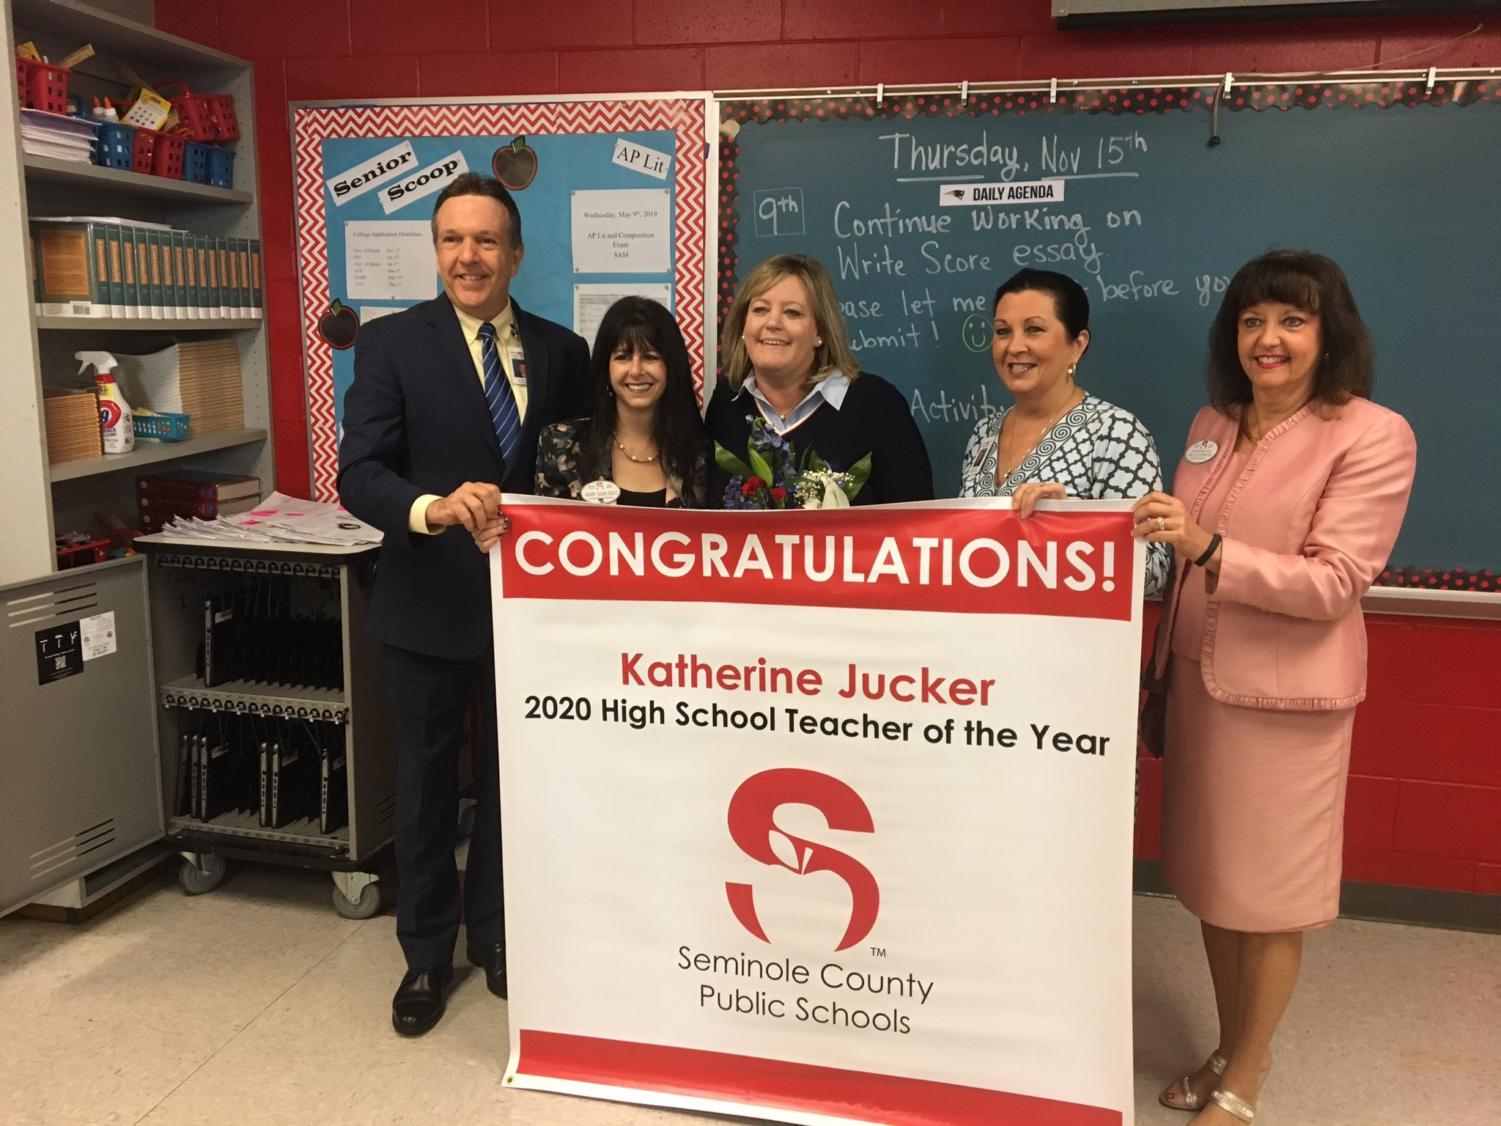 Katherine Jucker receives recognition as a Seminole County high school semifinalist for Teacher of the Year. Representatives from the county rewarded her for her hard work and commitment.